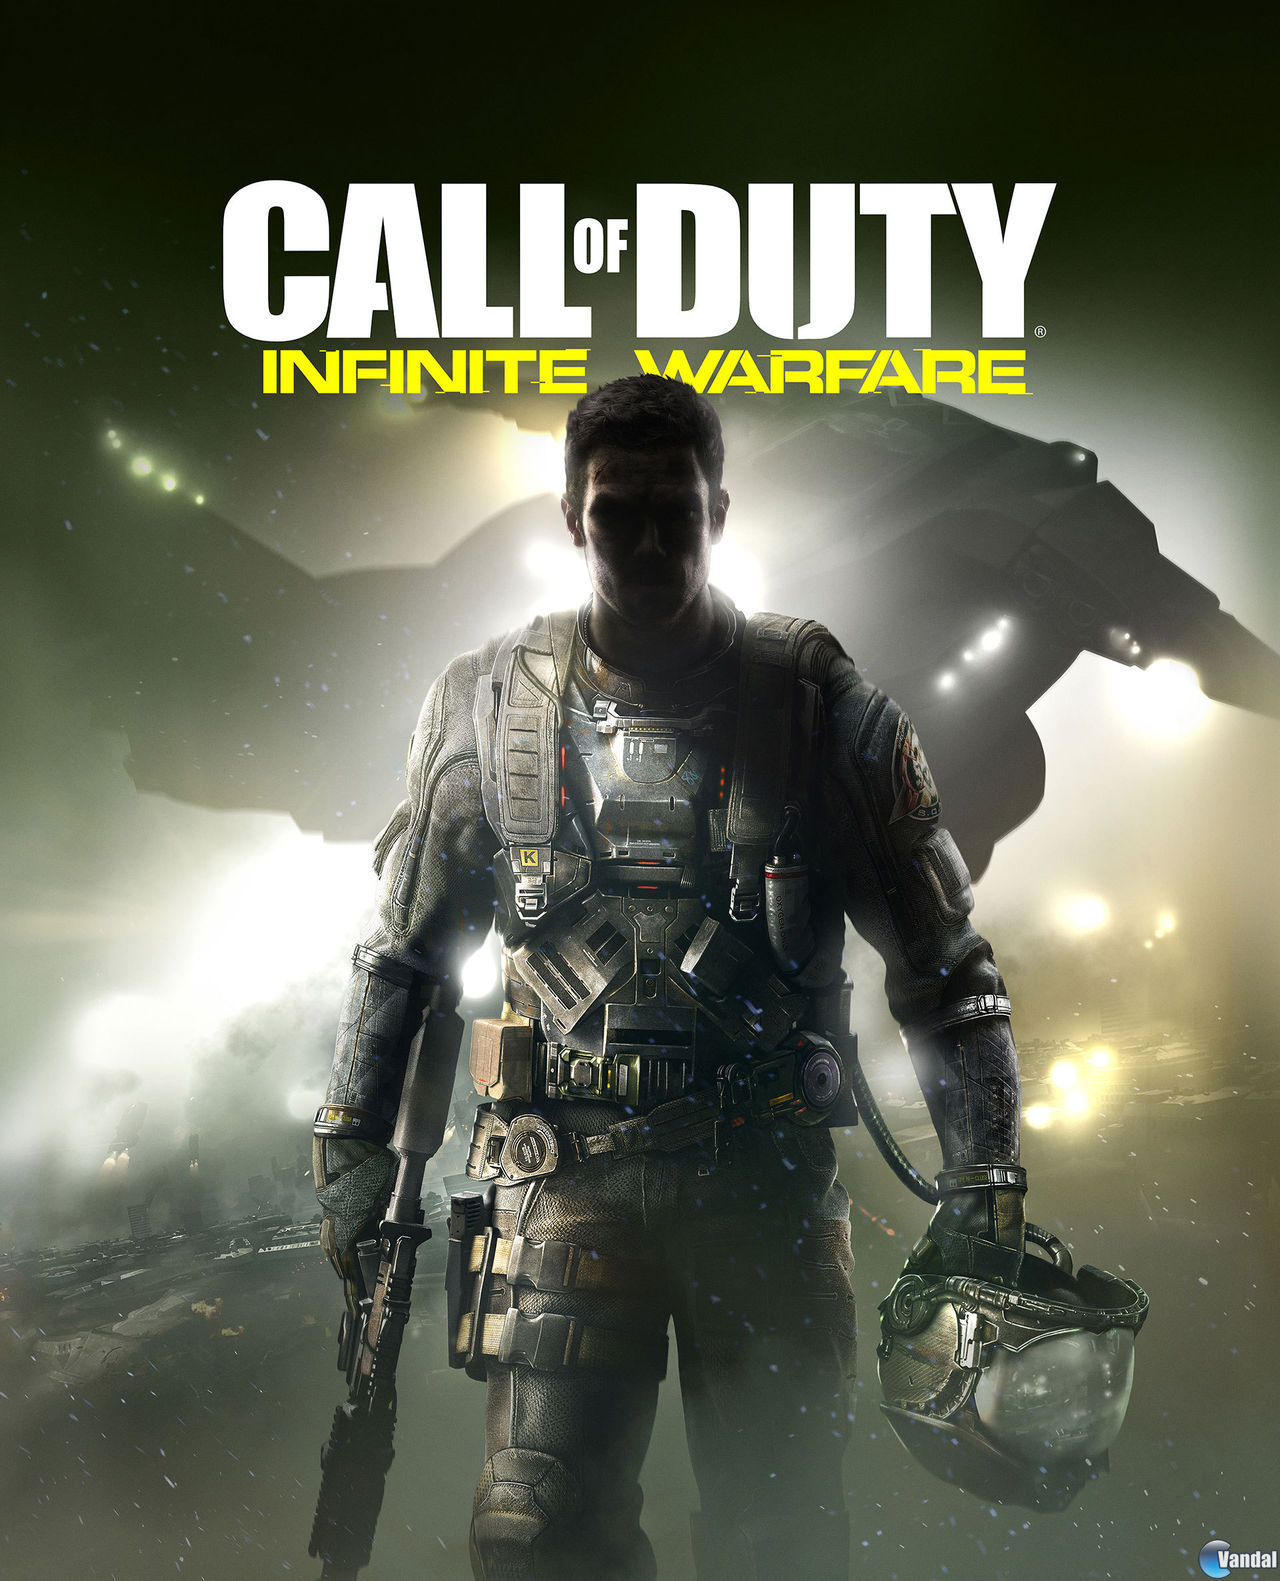 call-of-duty-infinite-warfare-2016521819